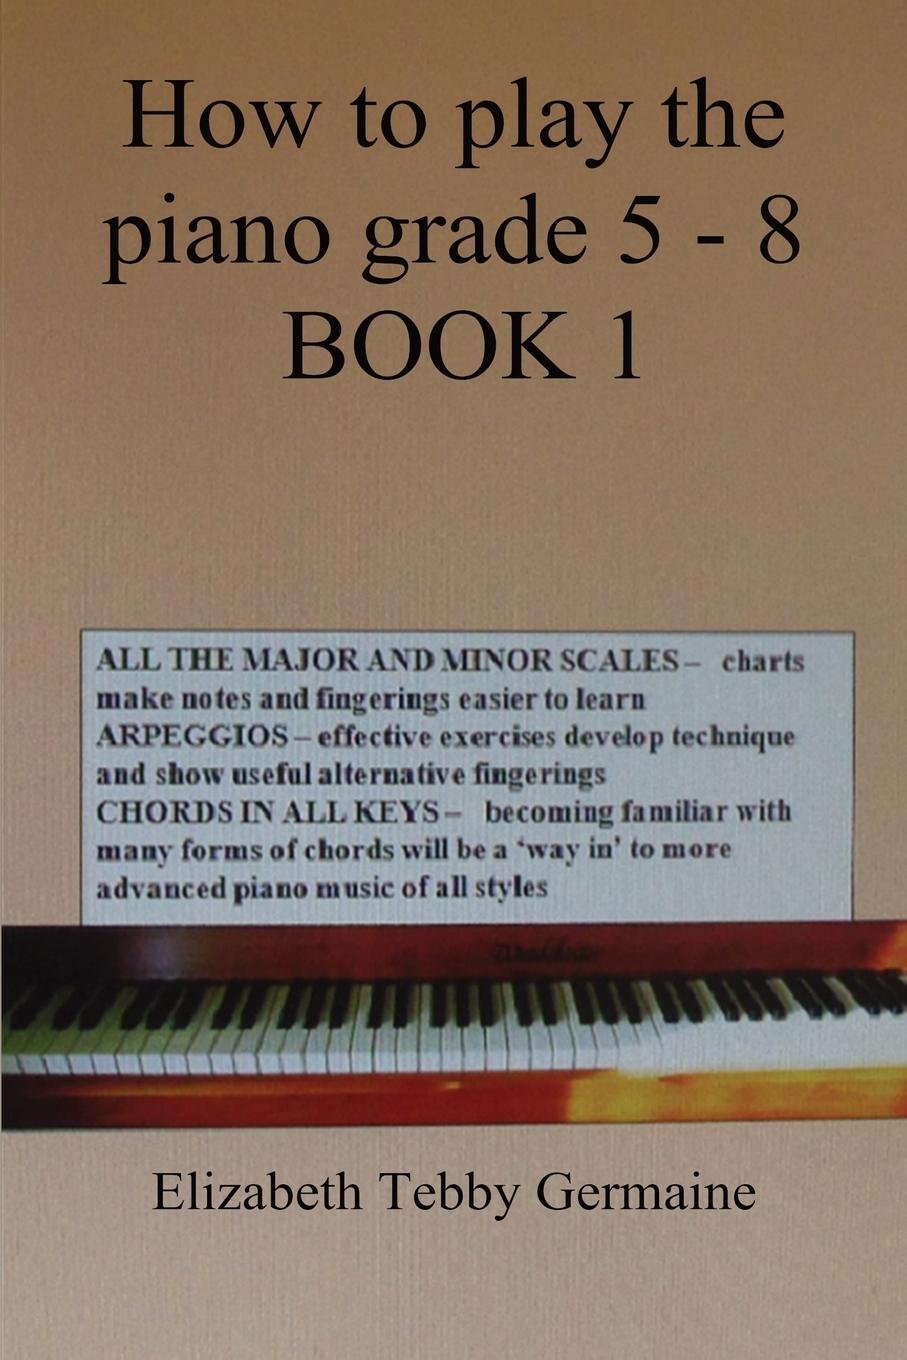 Elizabeth Tebby Germaine How to play the piano Grade 5 - 8 BOOK 1 high grade security anti theft stainless door motor bike warehouse padlock copper retro locks with 3 keys